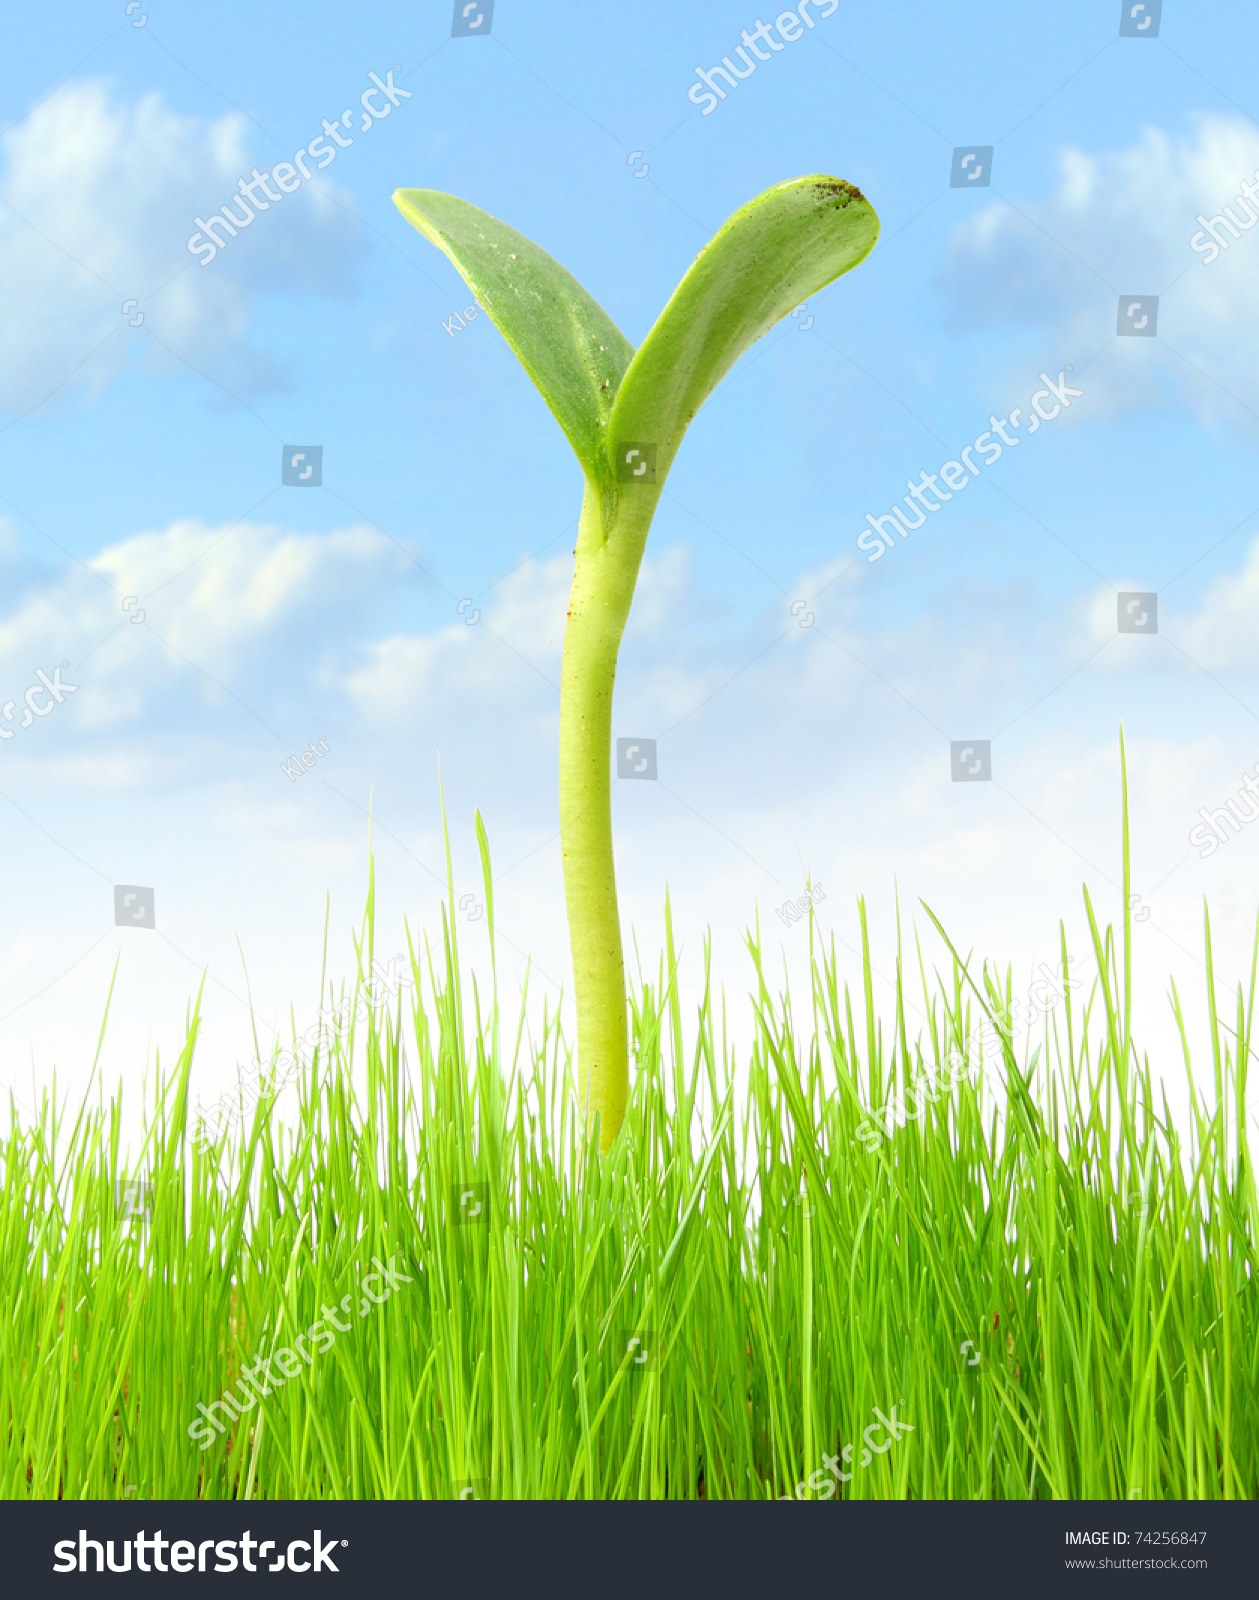 Young green plant growing on field stock illustration 74256847 shutterstock - Successful flower growing business ...